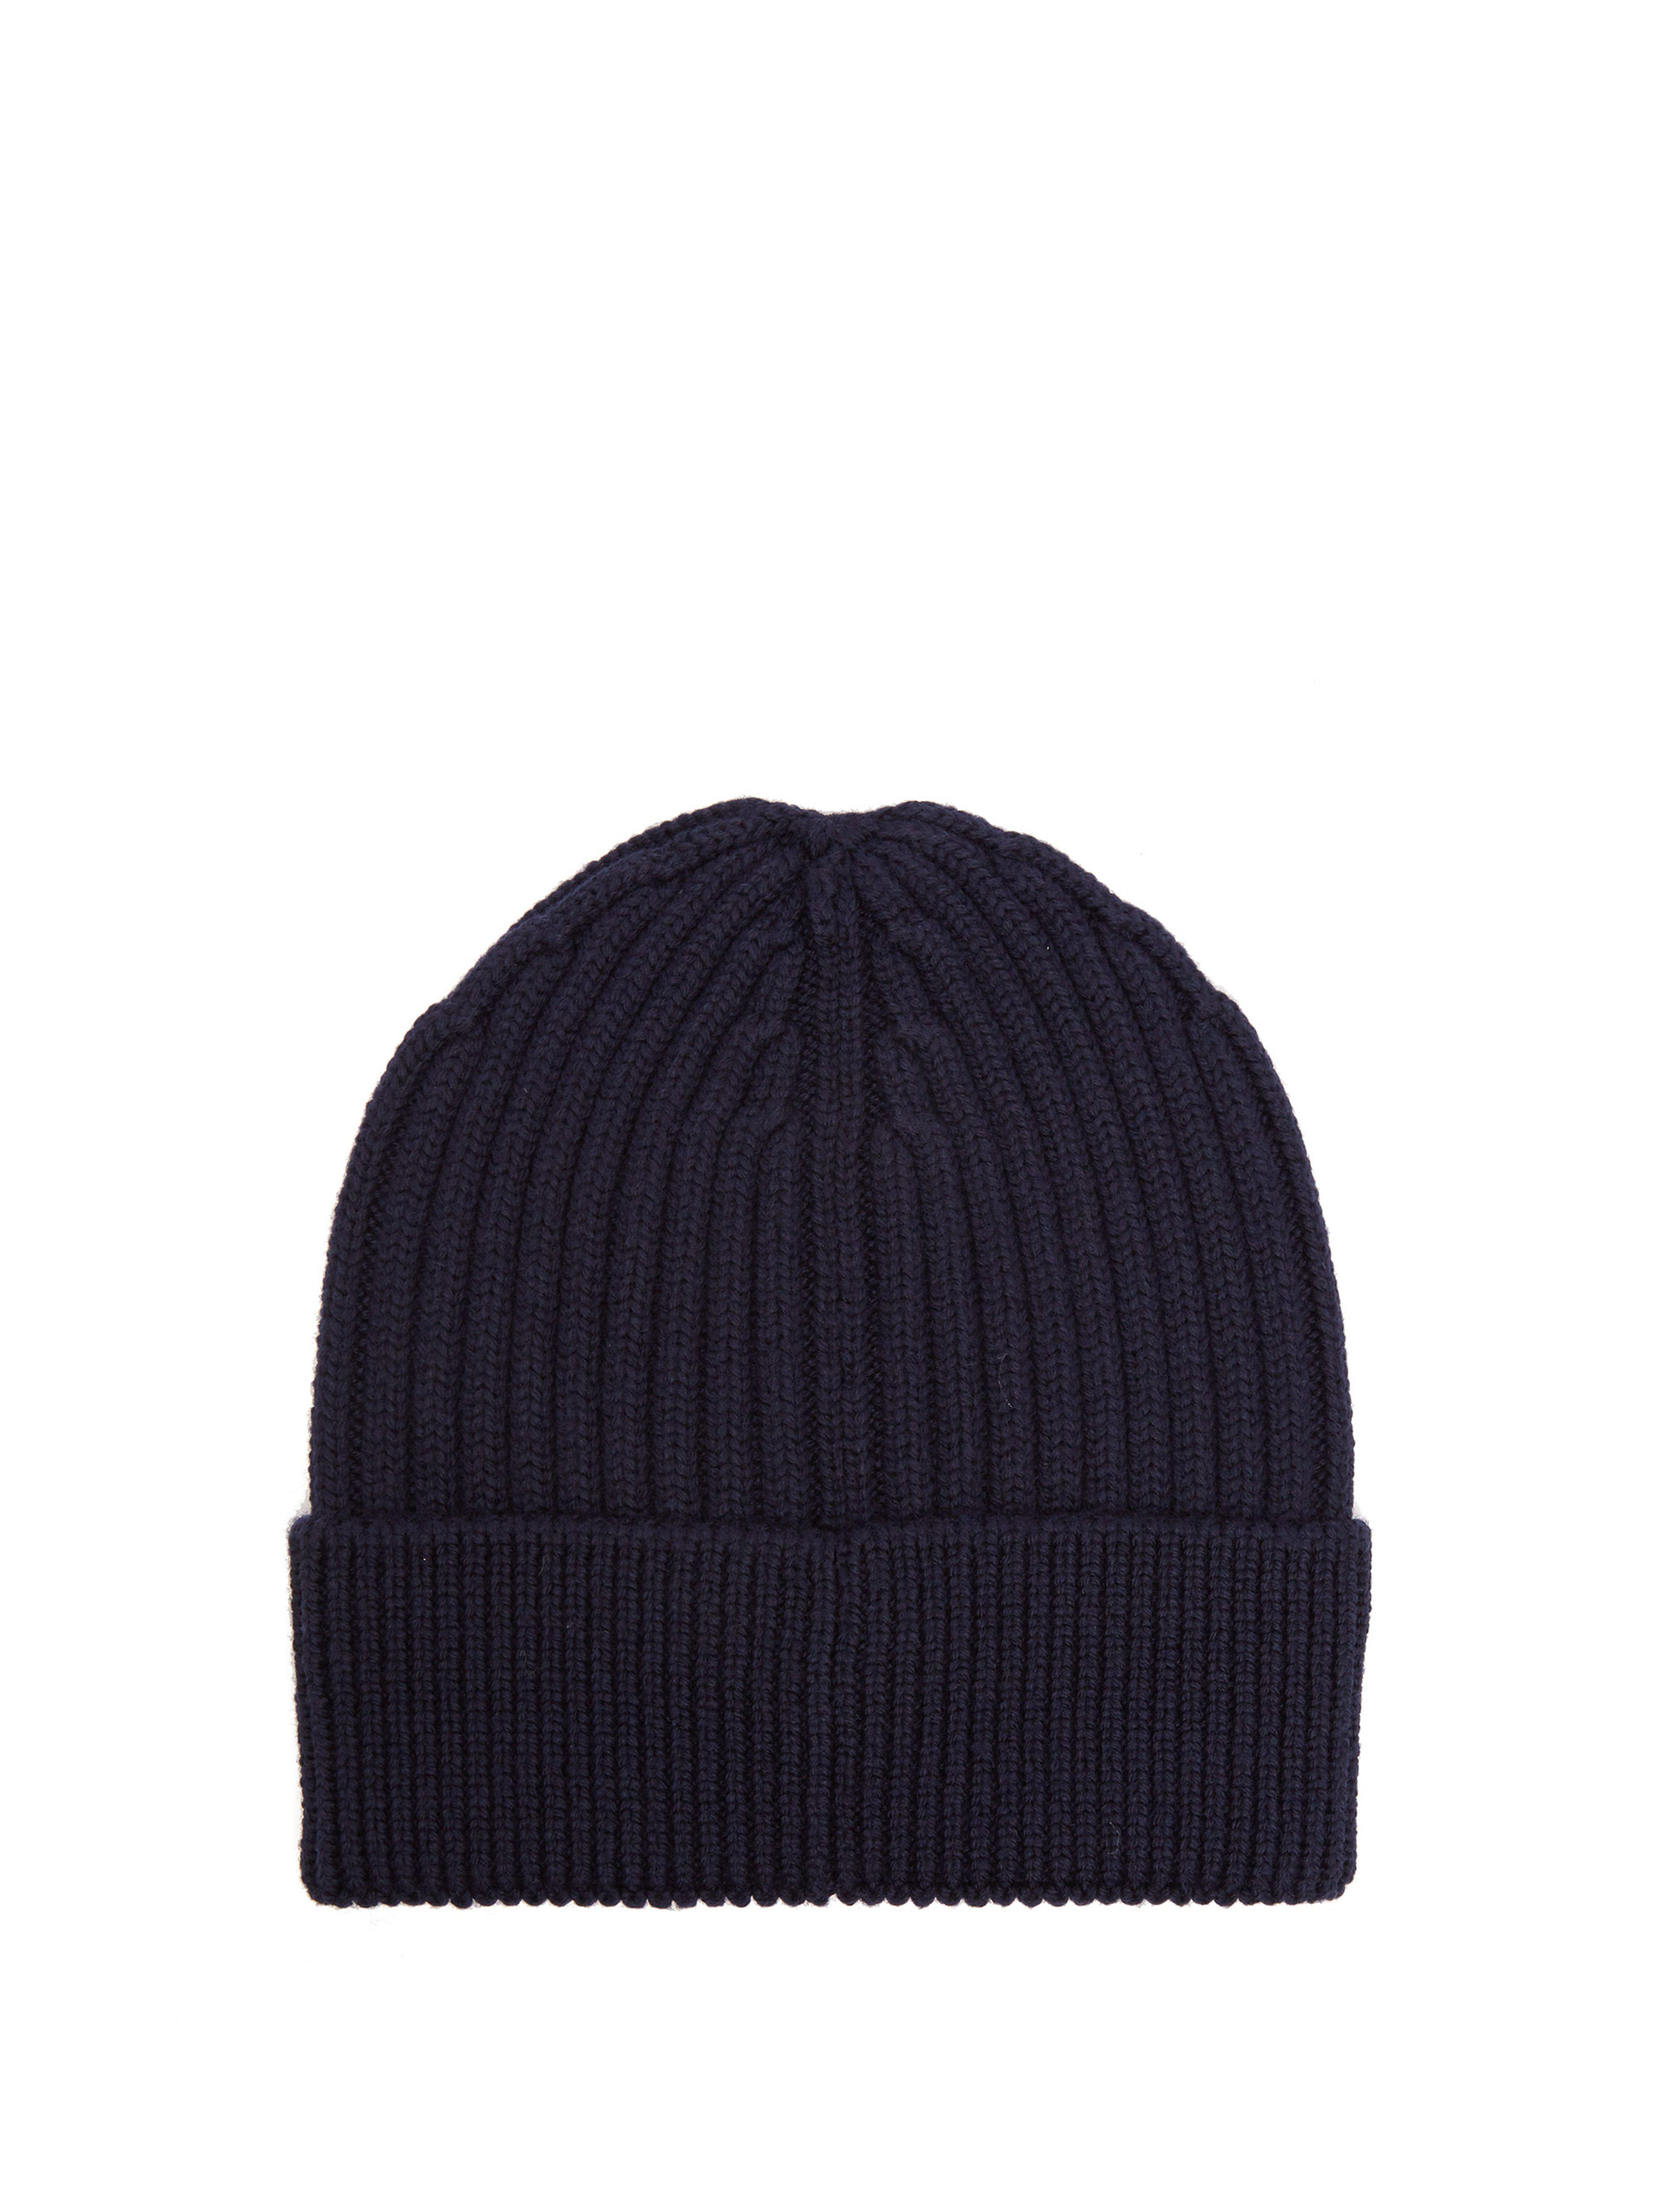 23bd8144d46f6 Moncler Grenoble Logo Embroidered Wool Beanie Hat in Blue for Men - Lyst